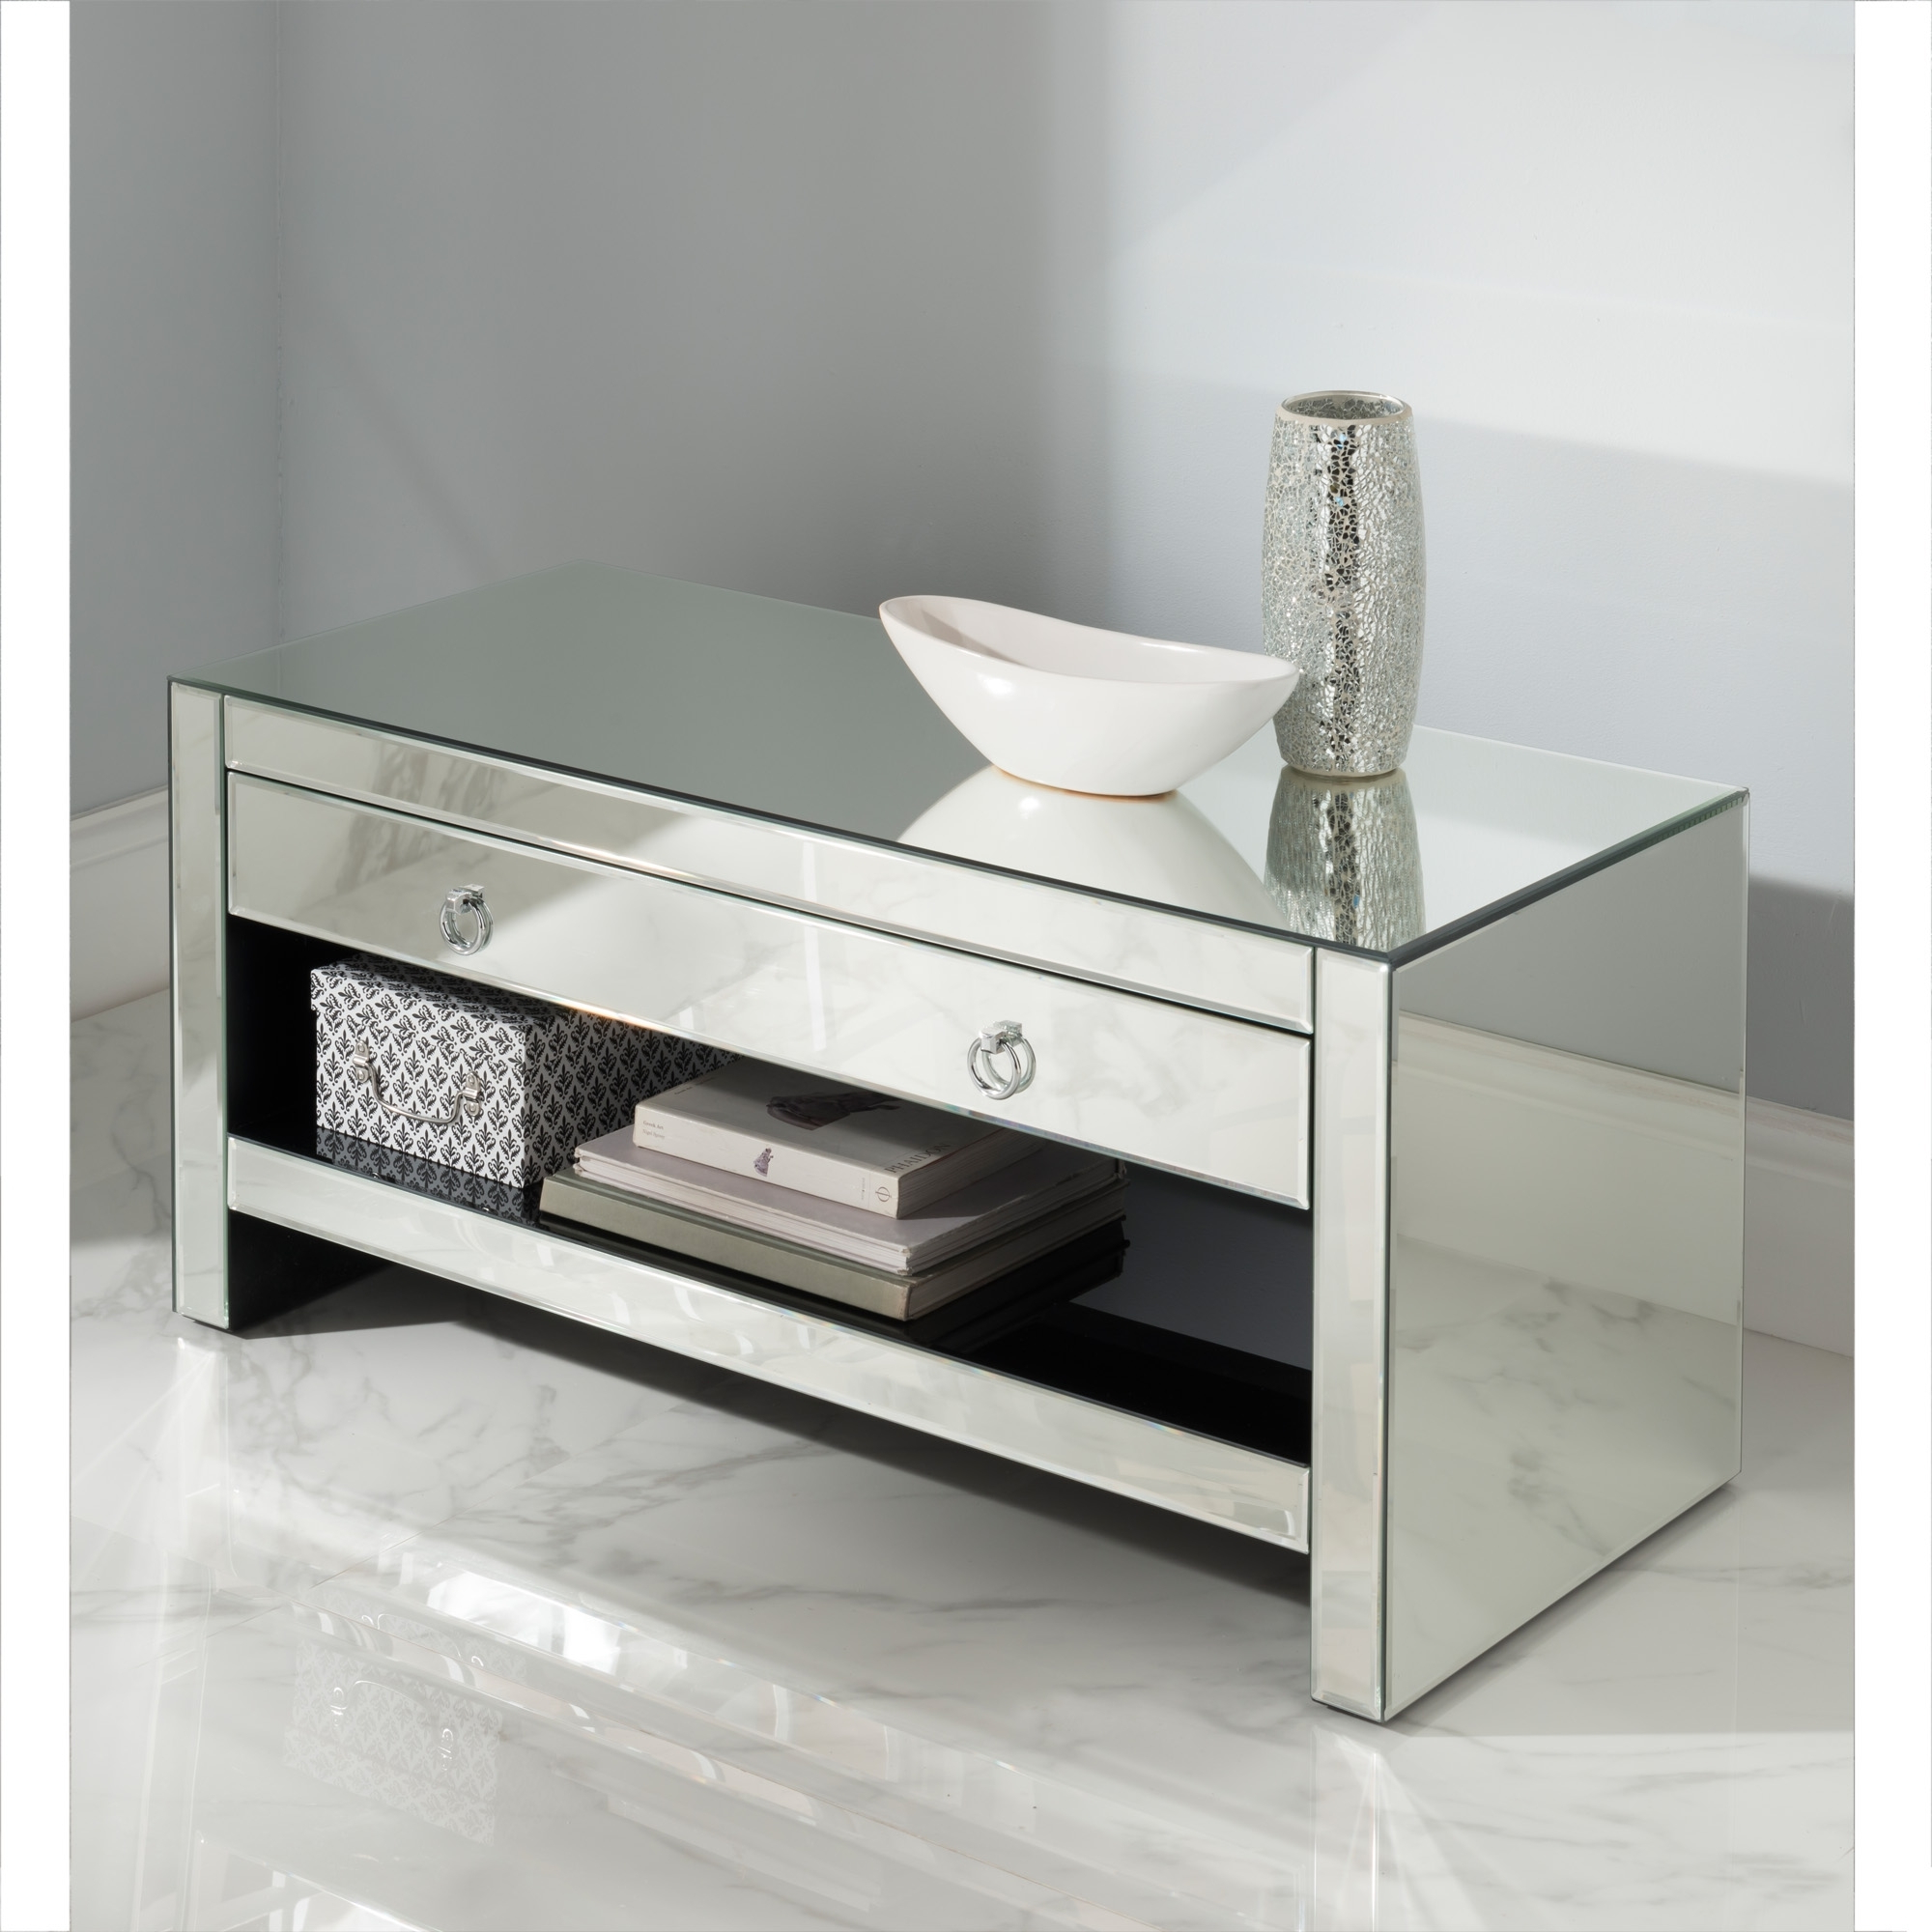 Mirrored Tv Cabinets Furniture With Regard To Trendy Mirrored Tv Cabinet (View 9 of 20)